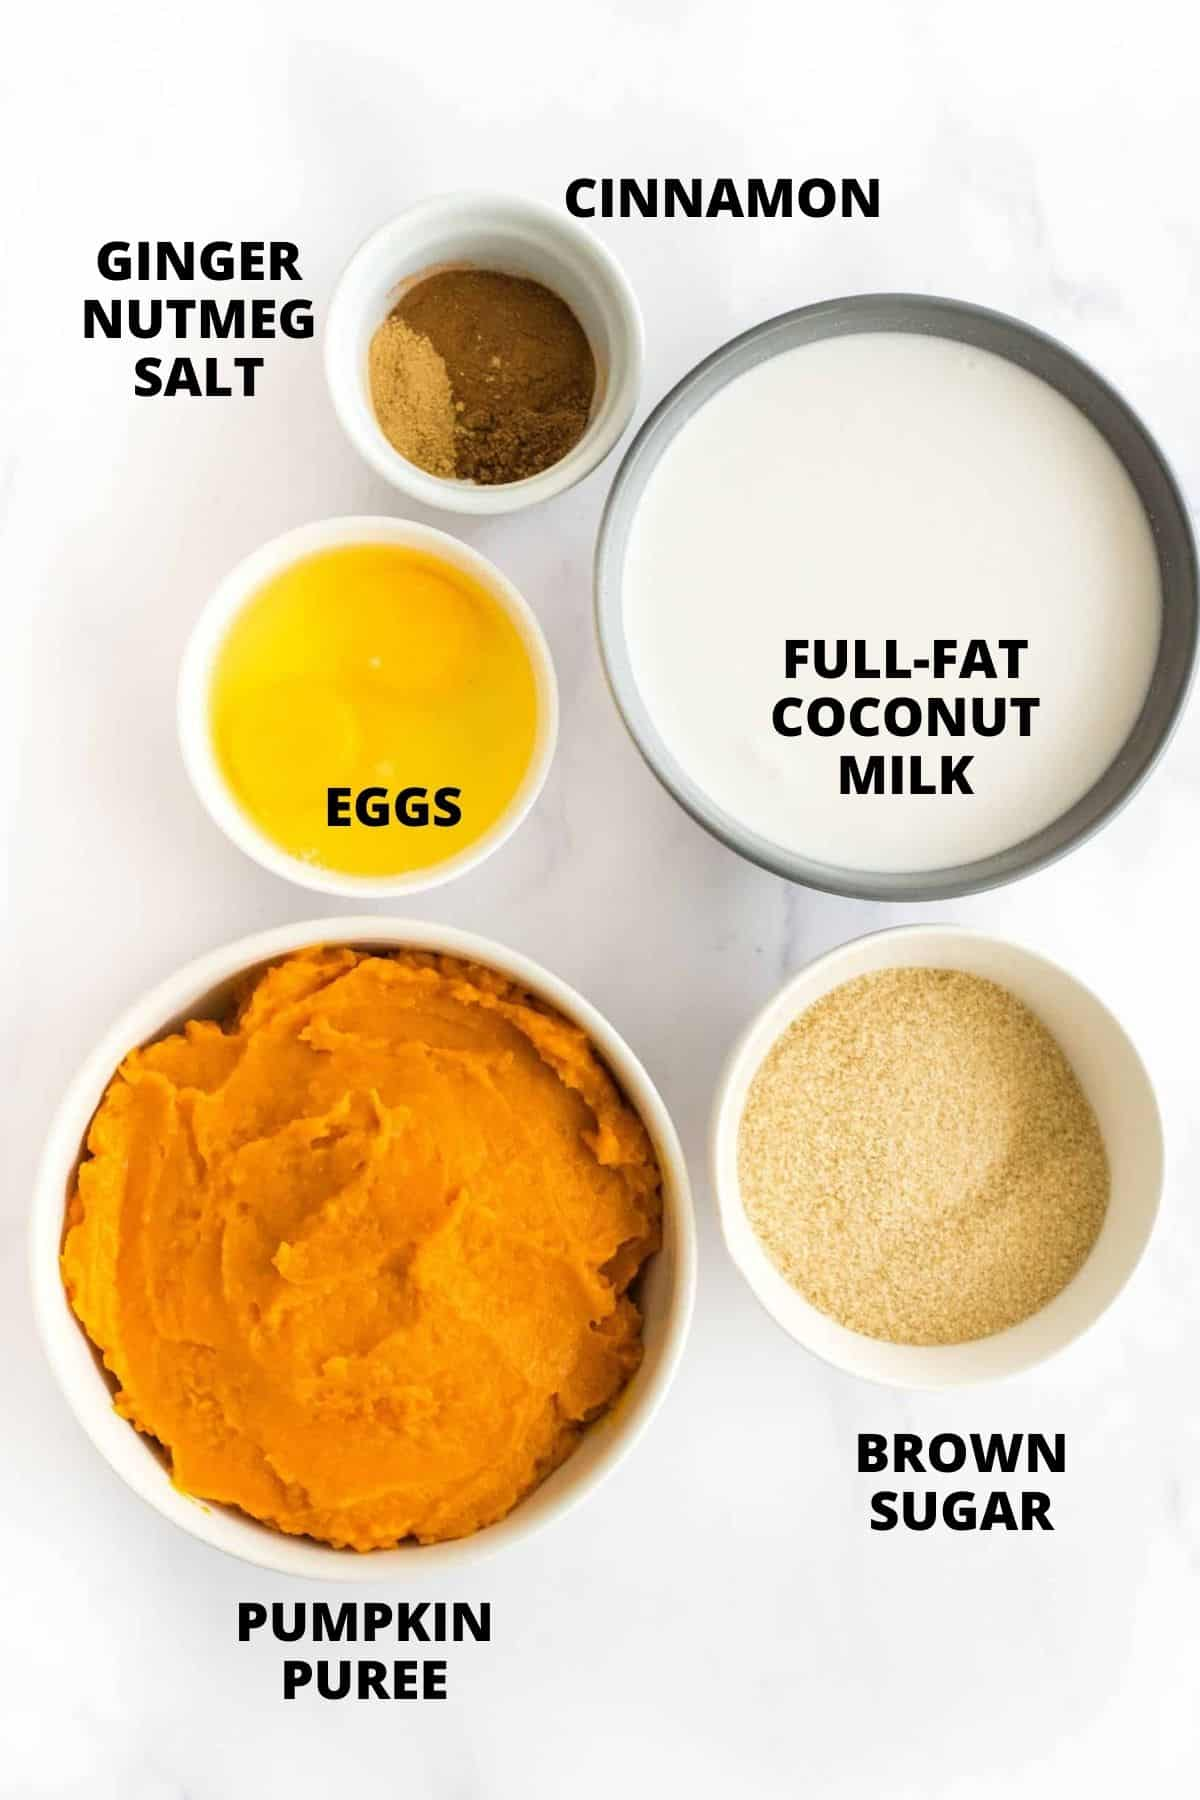 Labeled ingredients for crustless pumpkin pie.